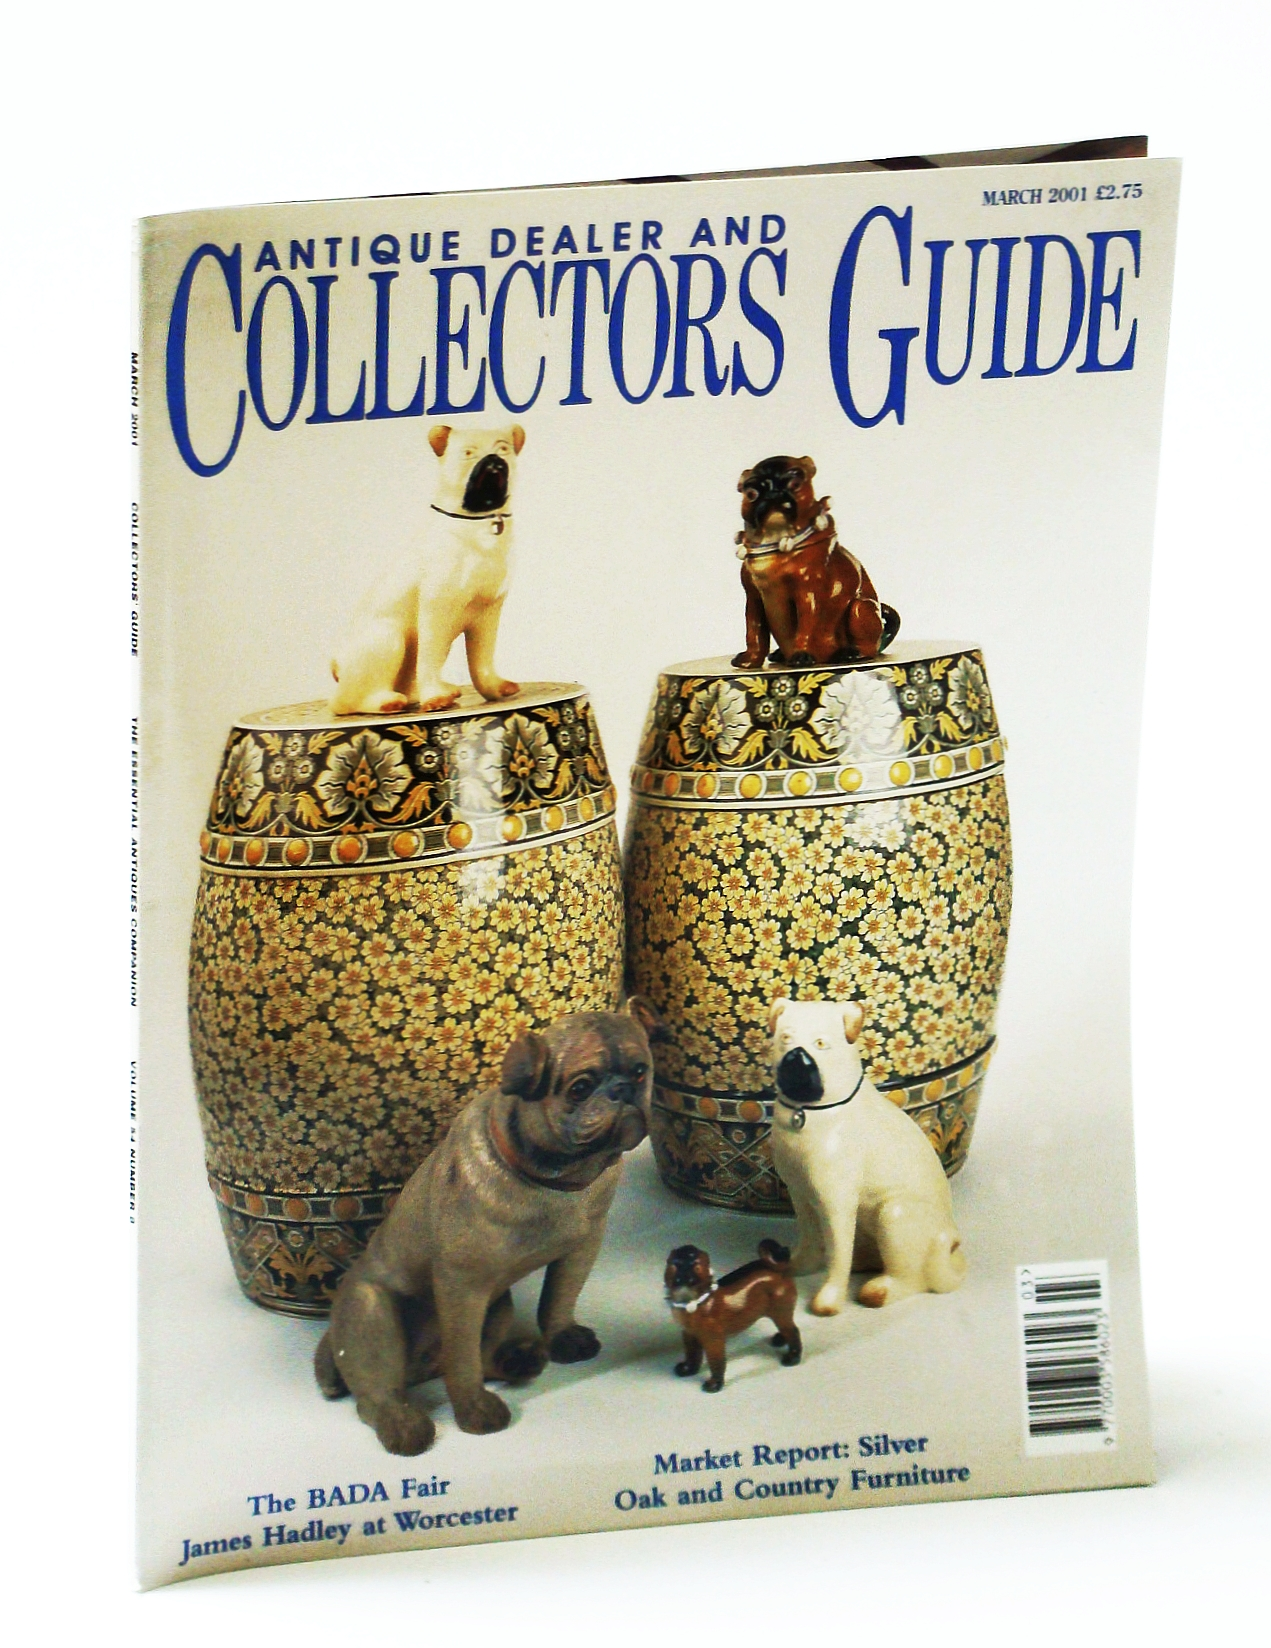 Image for Antique Dealer and Collectors Guide Magazine, March (Mar.) 2001 - Geoffrey Whitaker / James Hadley